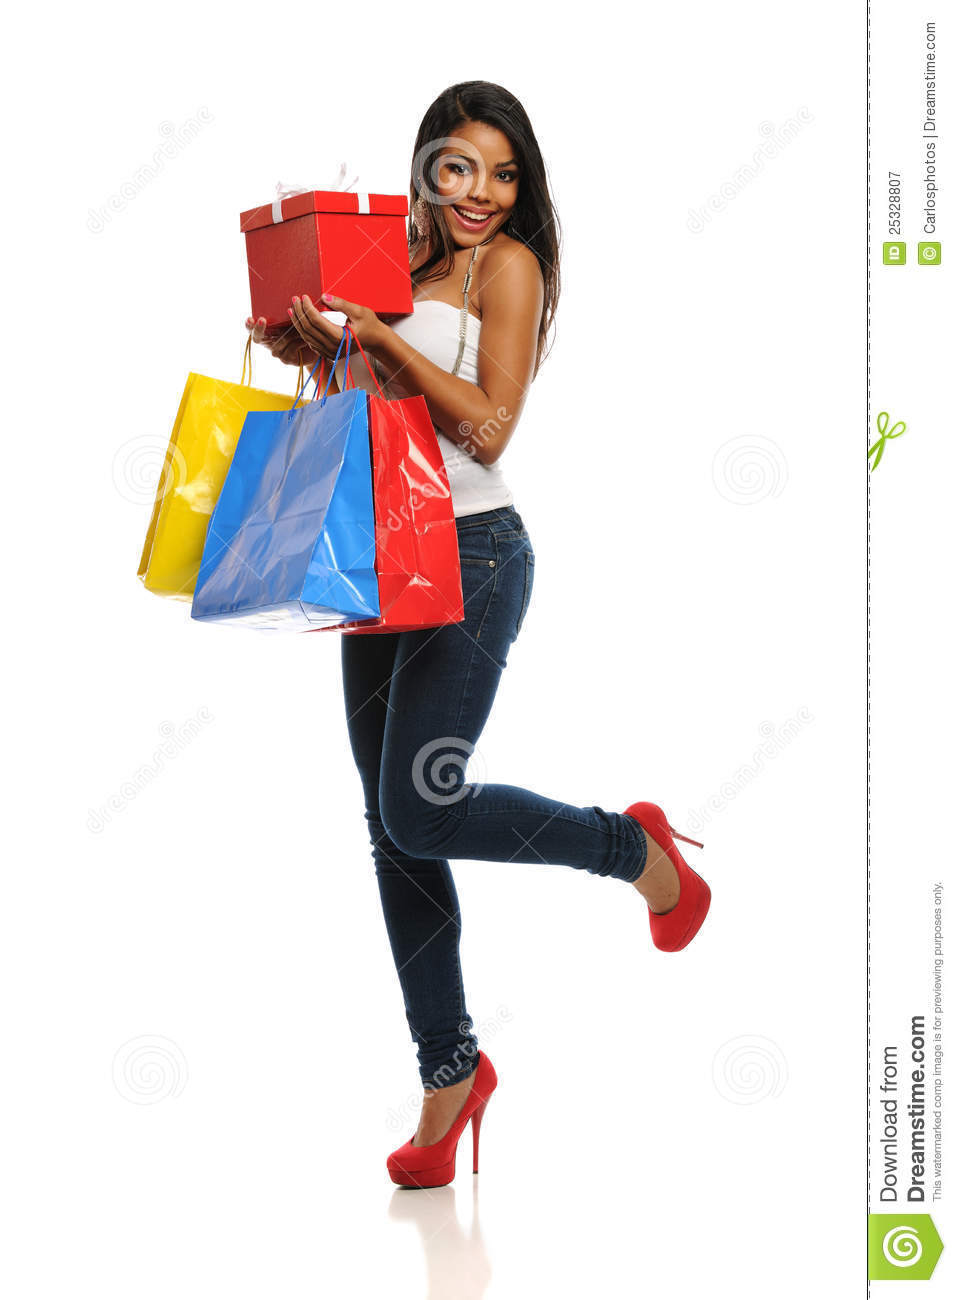 young woman on a shopping spree stock image male models